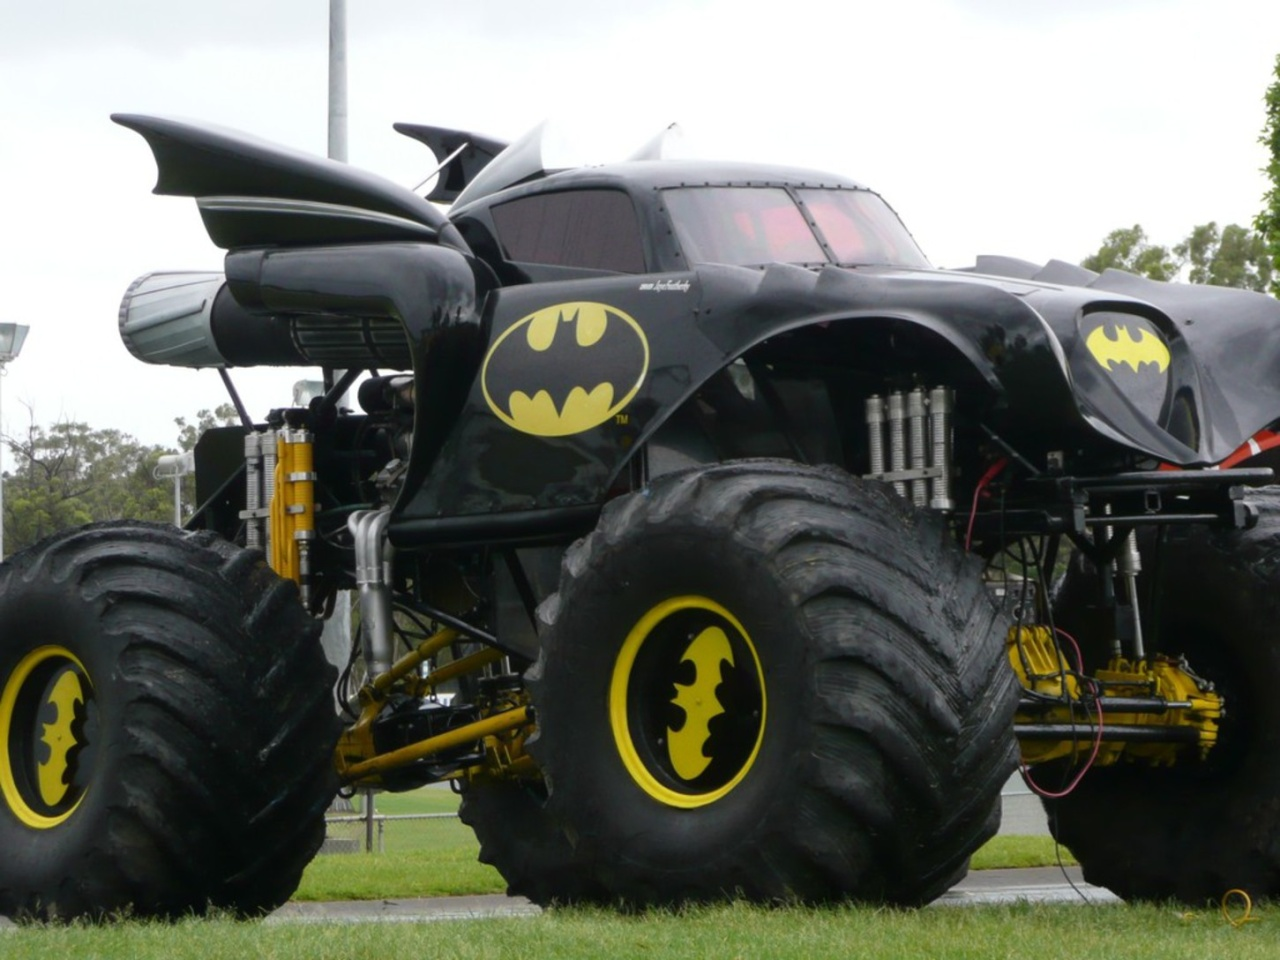 Batman Monster Truck Roadroll